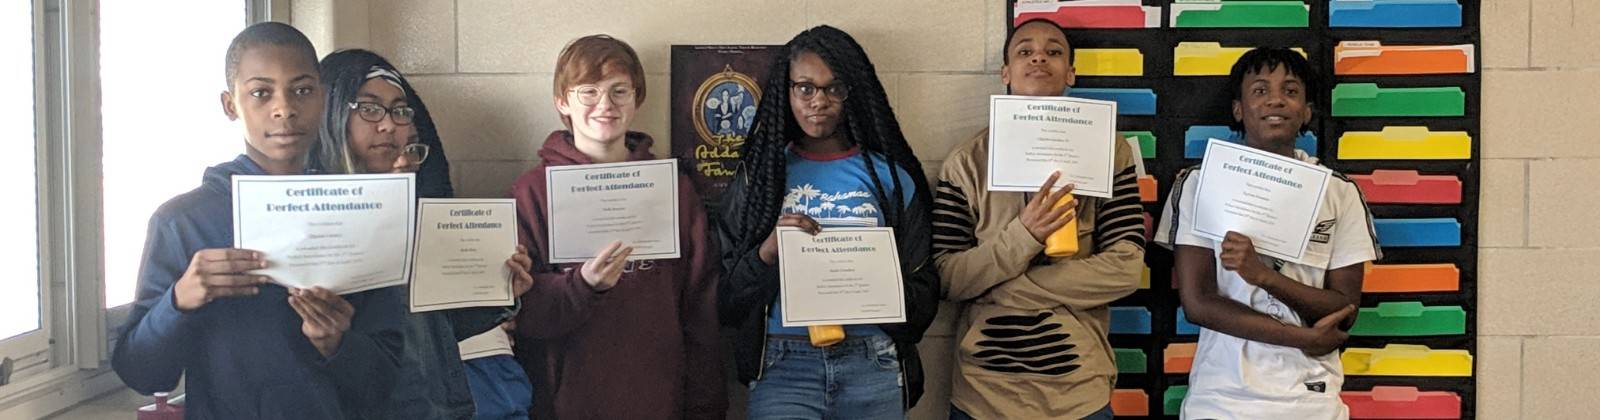 Students with Positive Behavior Award Certificates